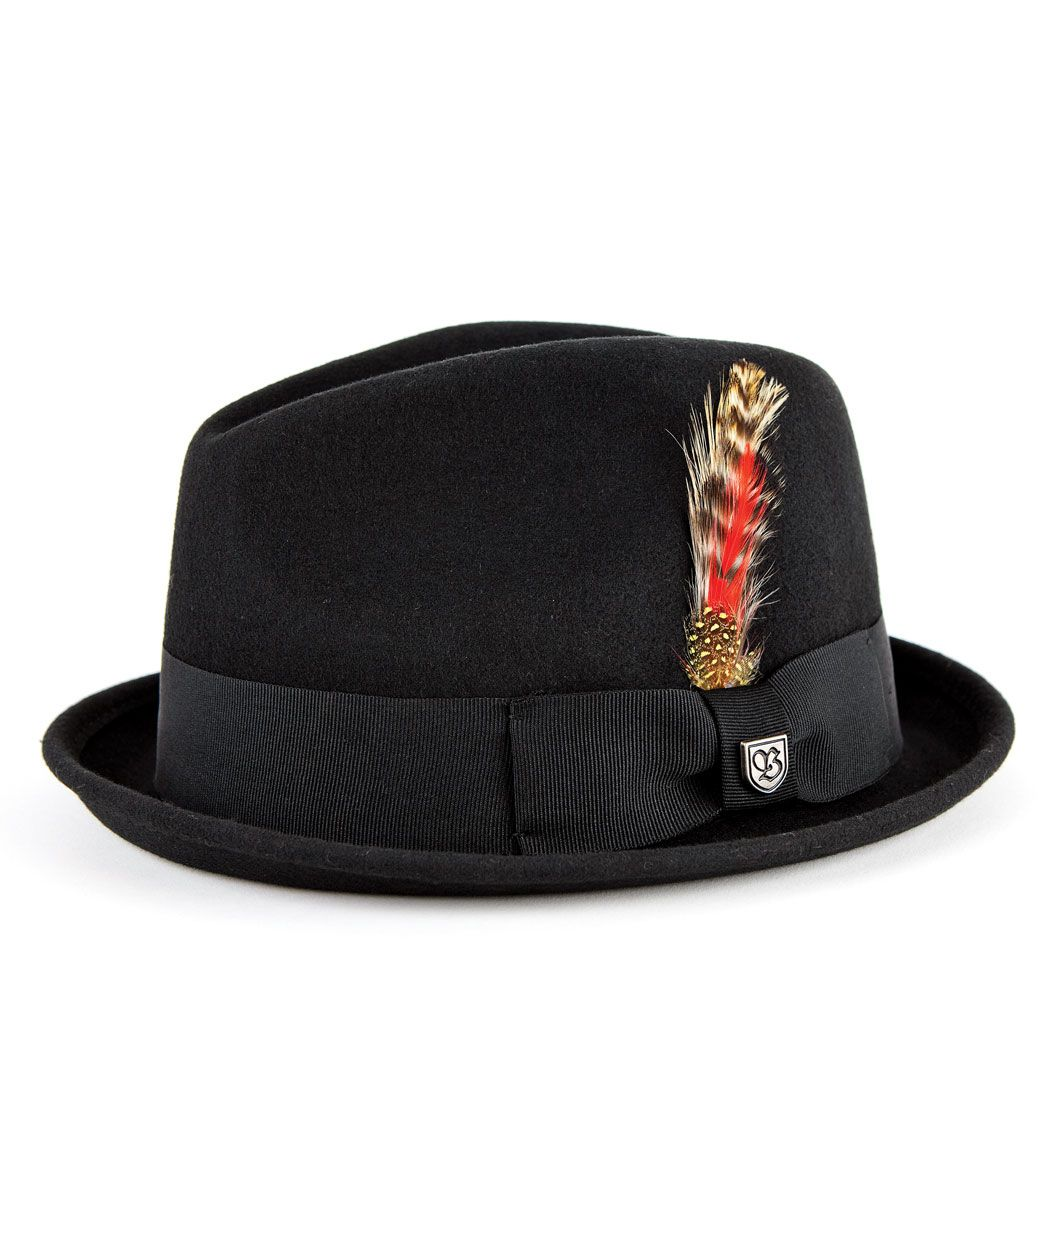 a82bd61b4ae  80 The Gain Fedora Hat